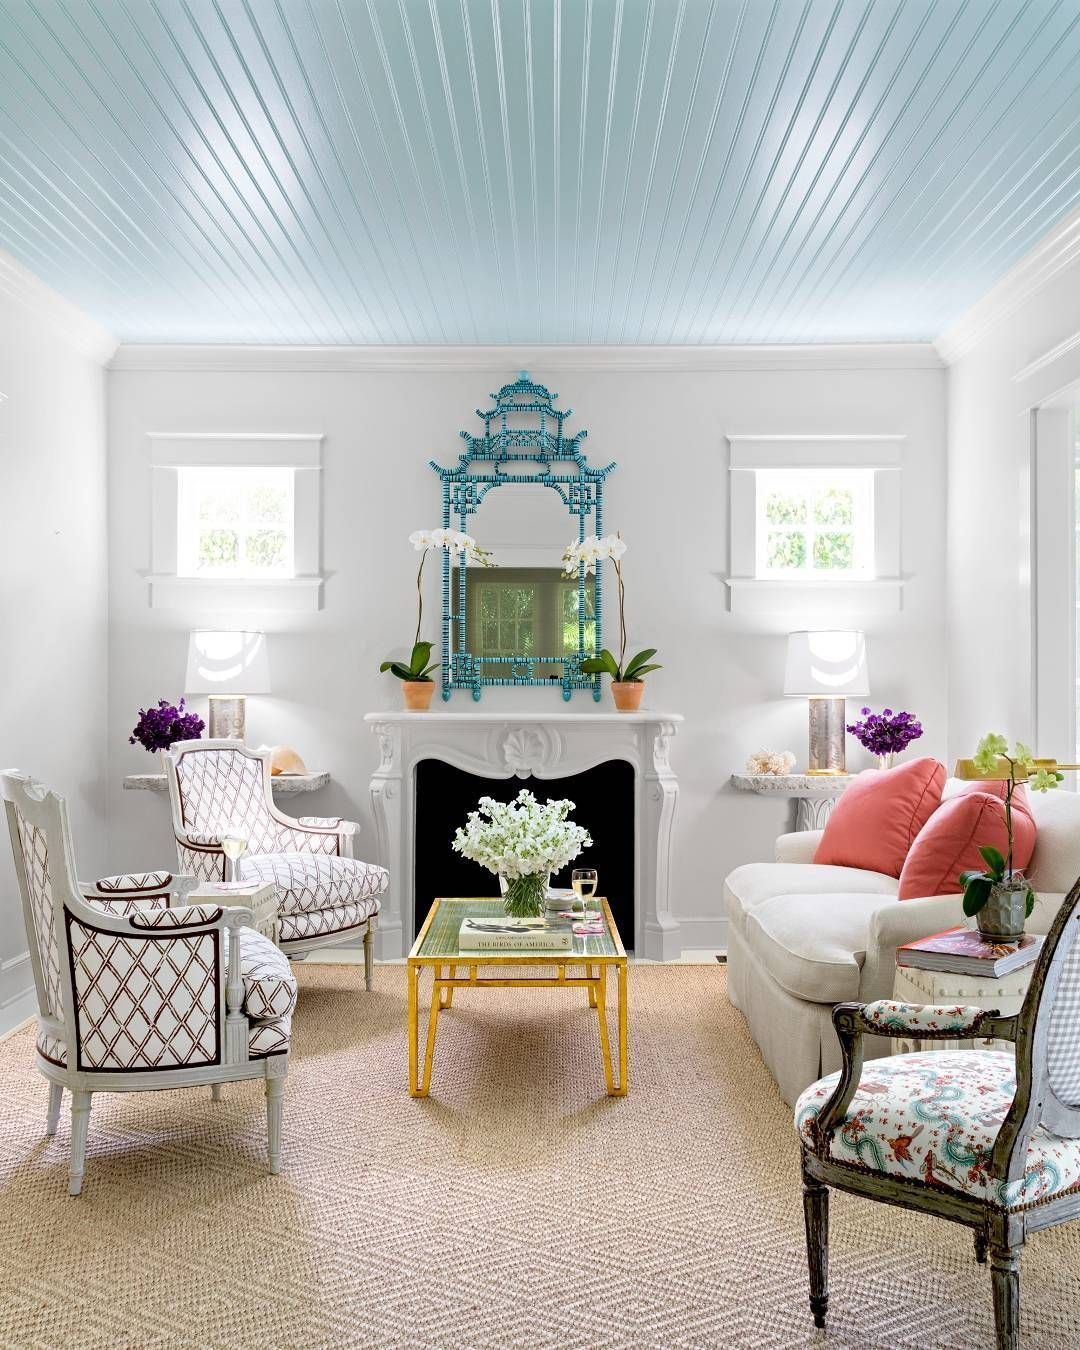 Housebeautiful On Instagram Every Beach House Should Have A Sky Blue Ceiling Full Home In Our Newest Issue Blue Ceilings Home Decor Living Room Designs #sky #blue #living #room